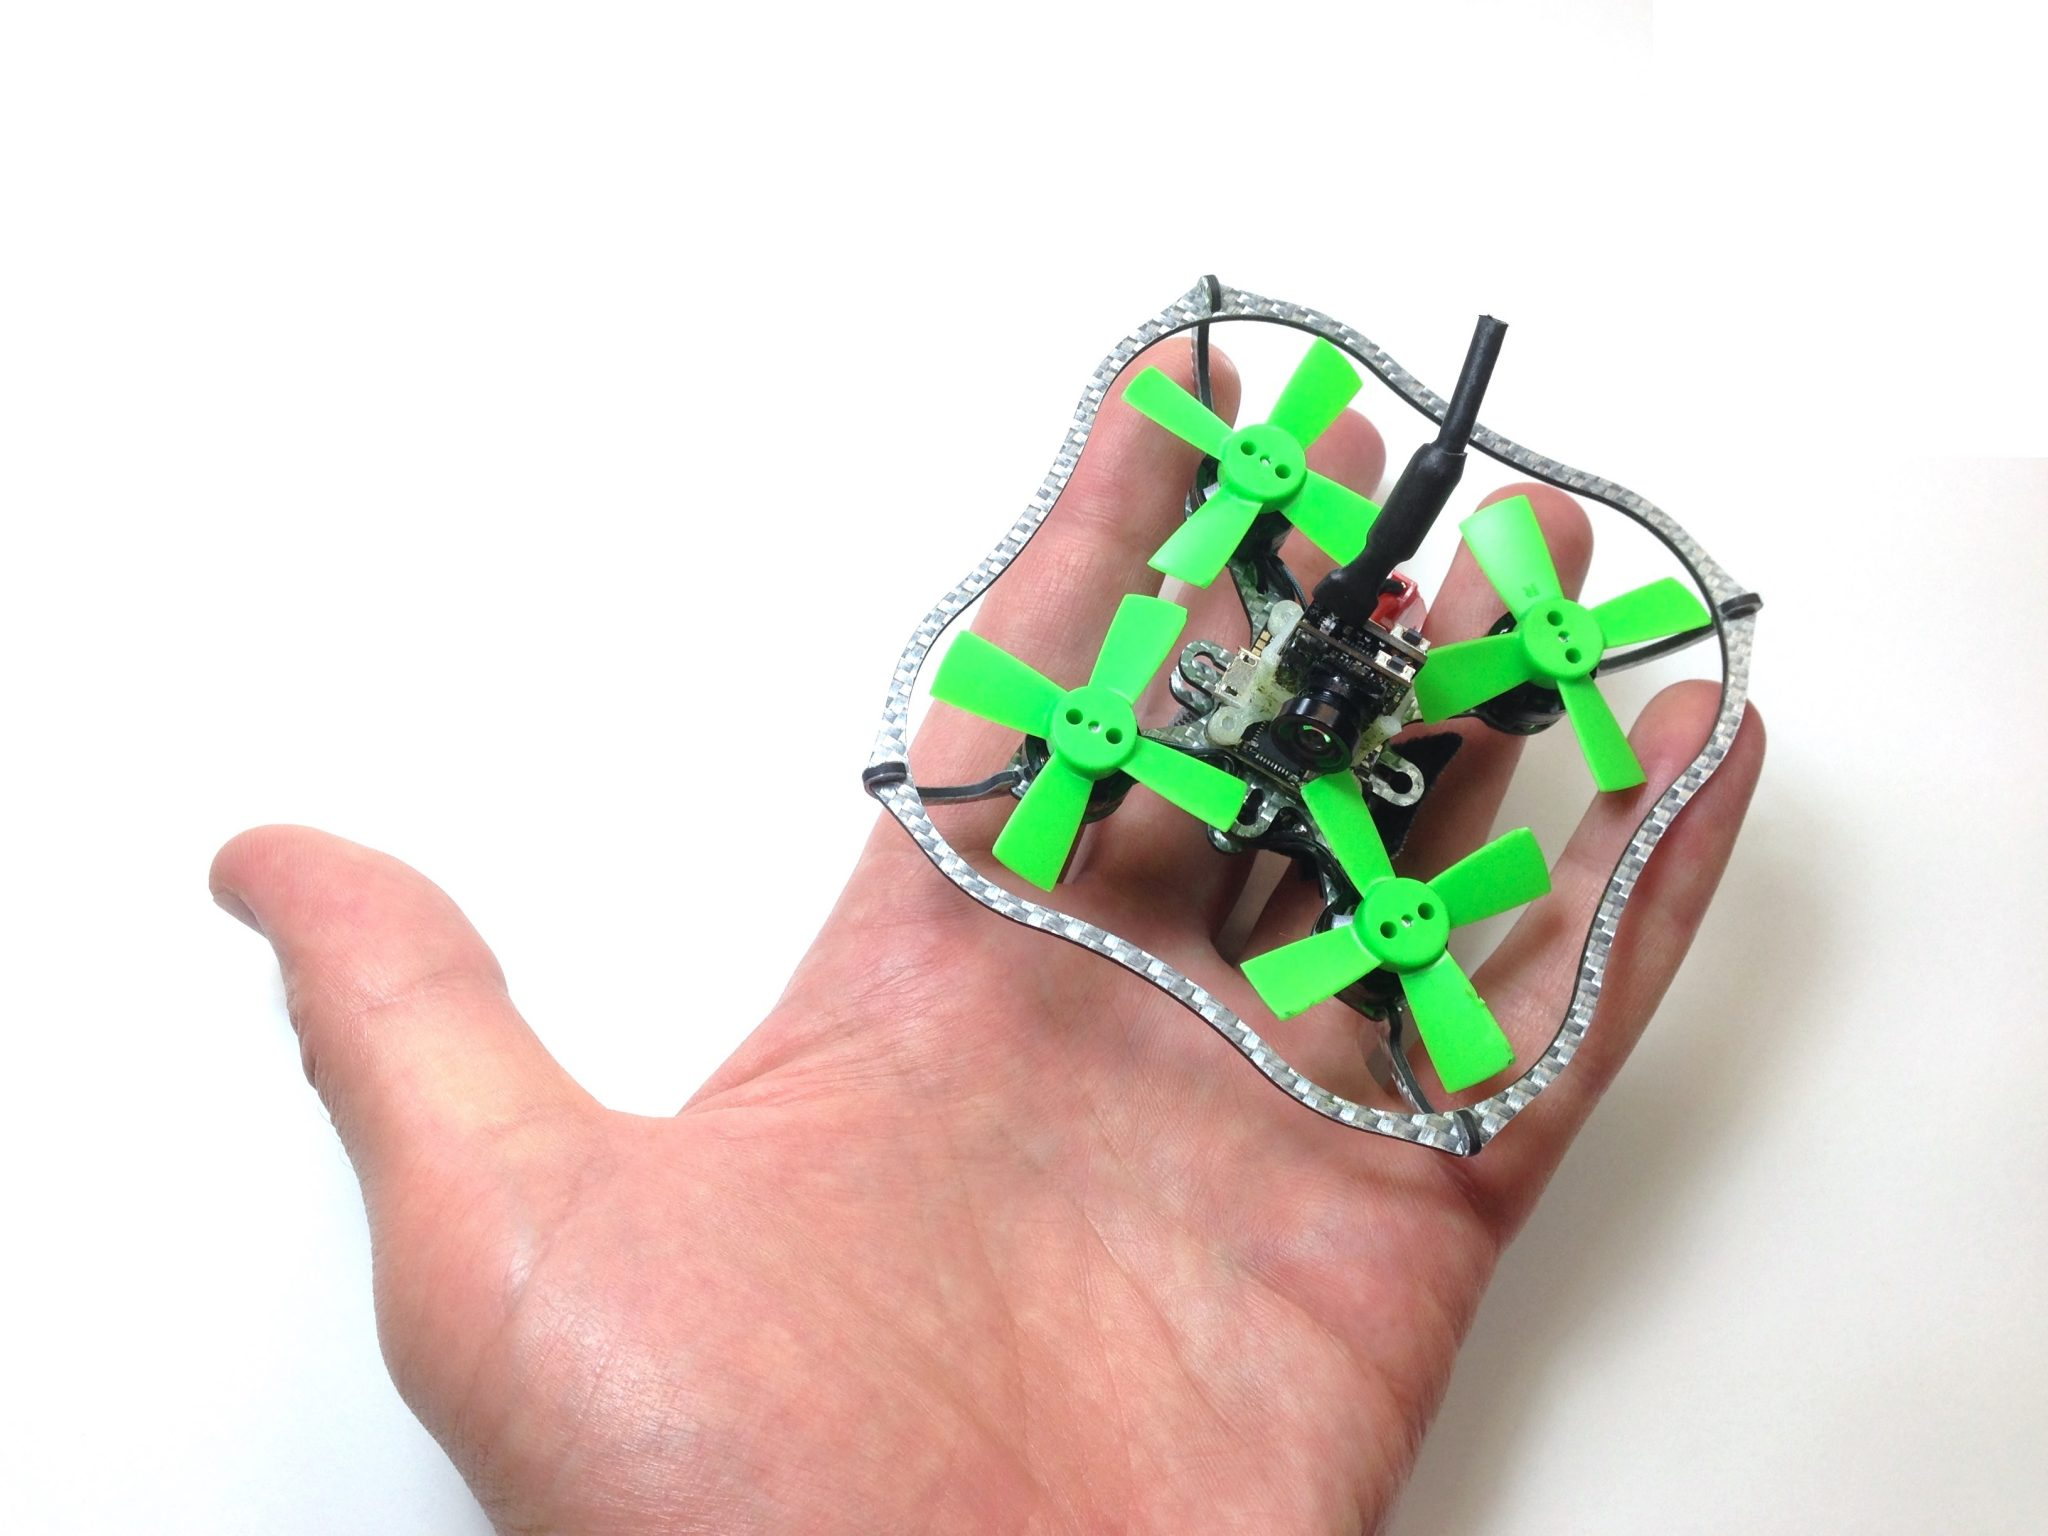 Nano X - Extreme Edition - DIY Kit - Micro FPV Racing Drone